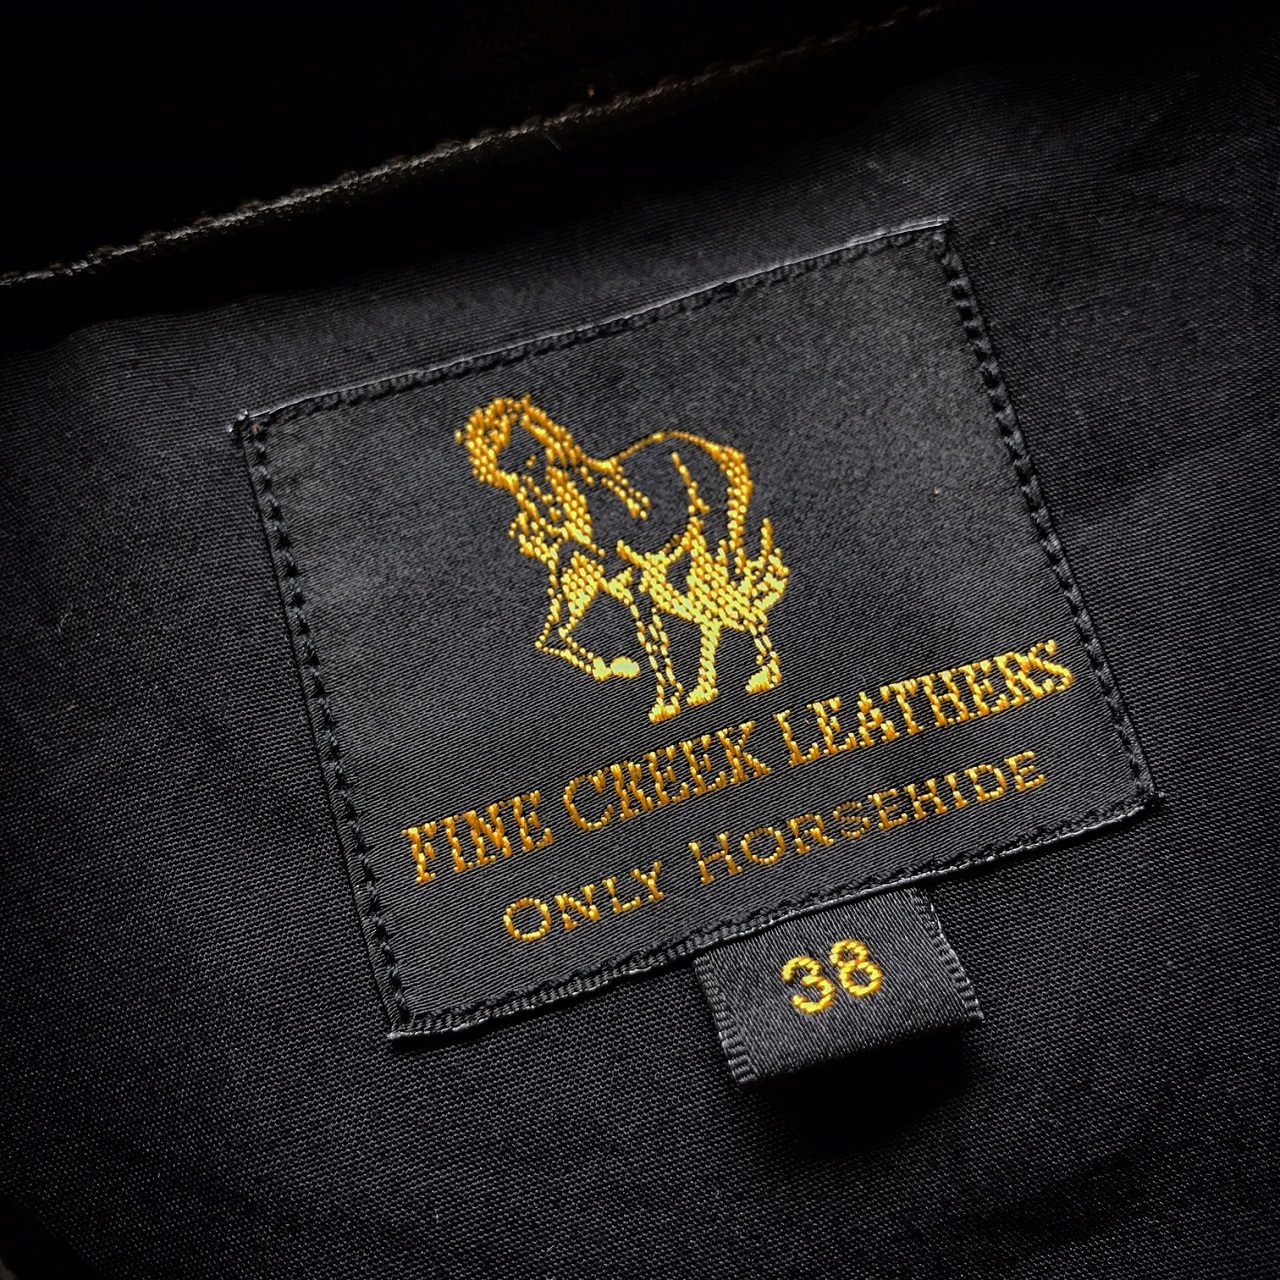 Fine creek leathers richmond 2 3 for Indian jewelry store richmond va